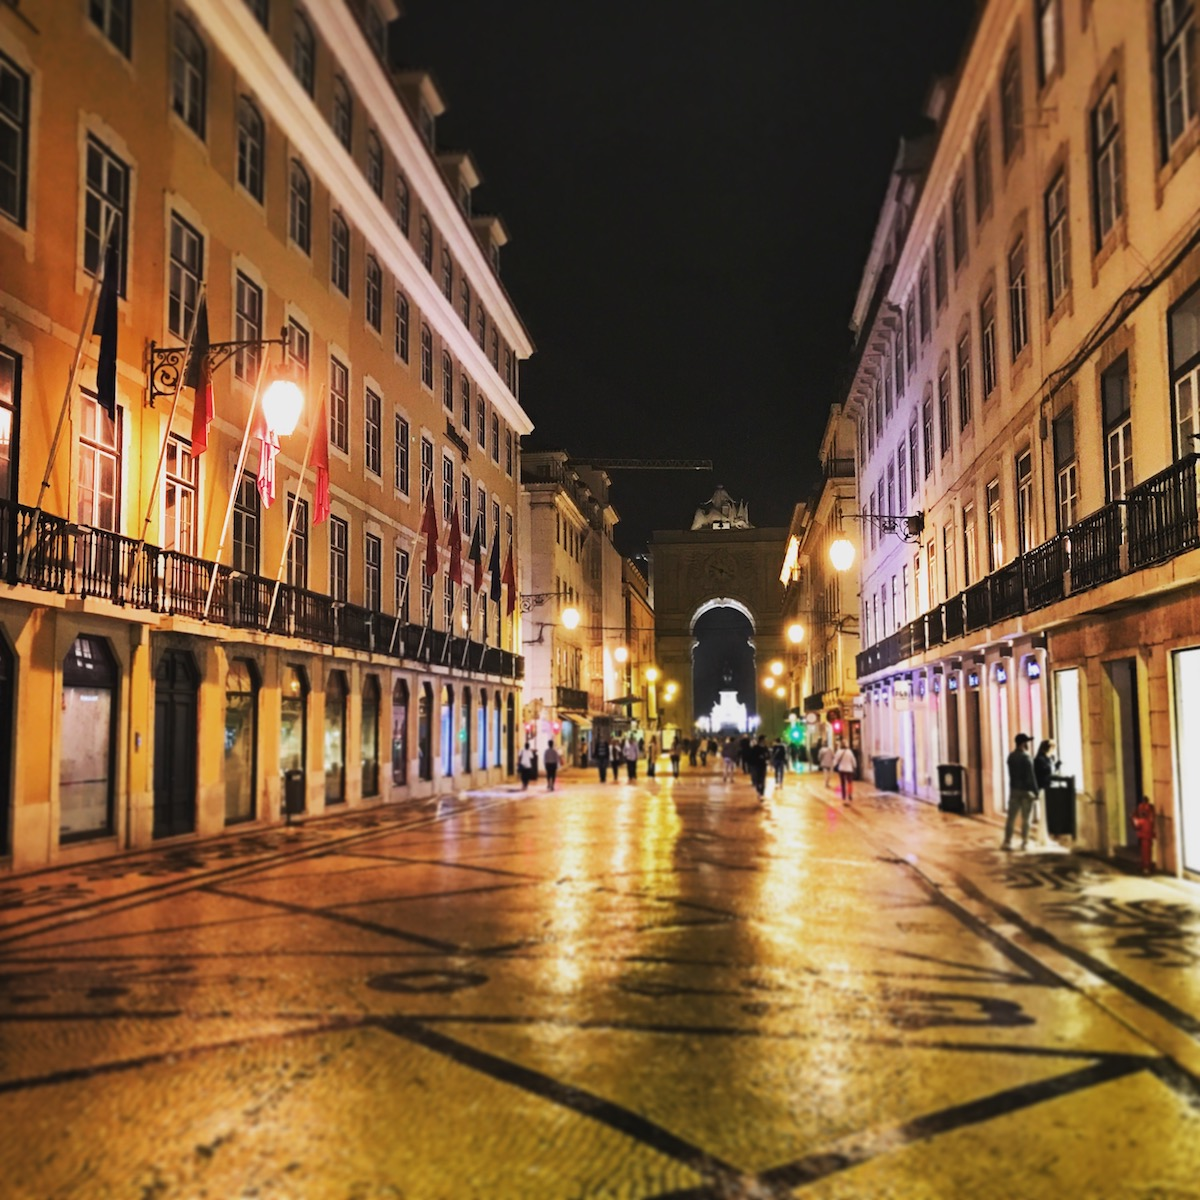 The length of Rua Augusta is paved with polished stone tiles arranged in patterns for an incredible image under the street lights. The arch marks the southern end just before the waterline.